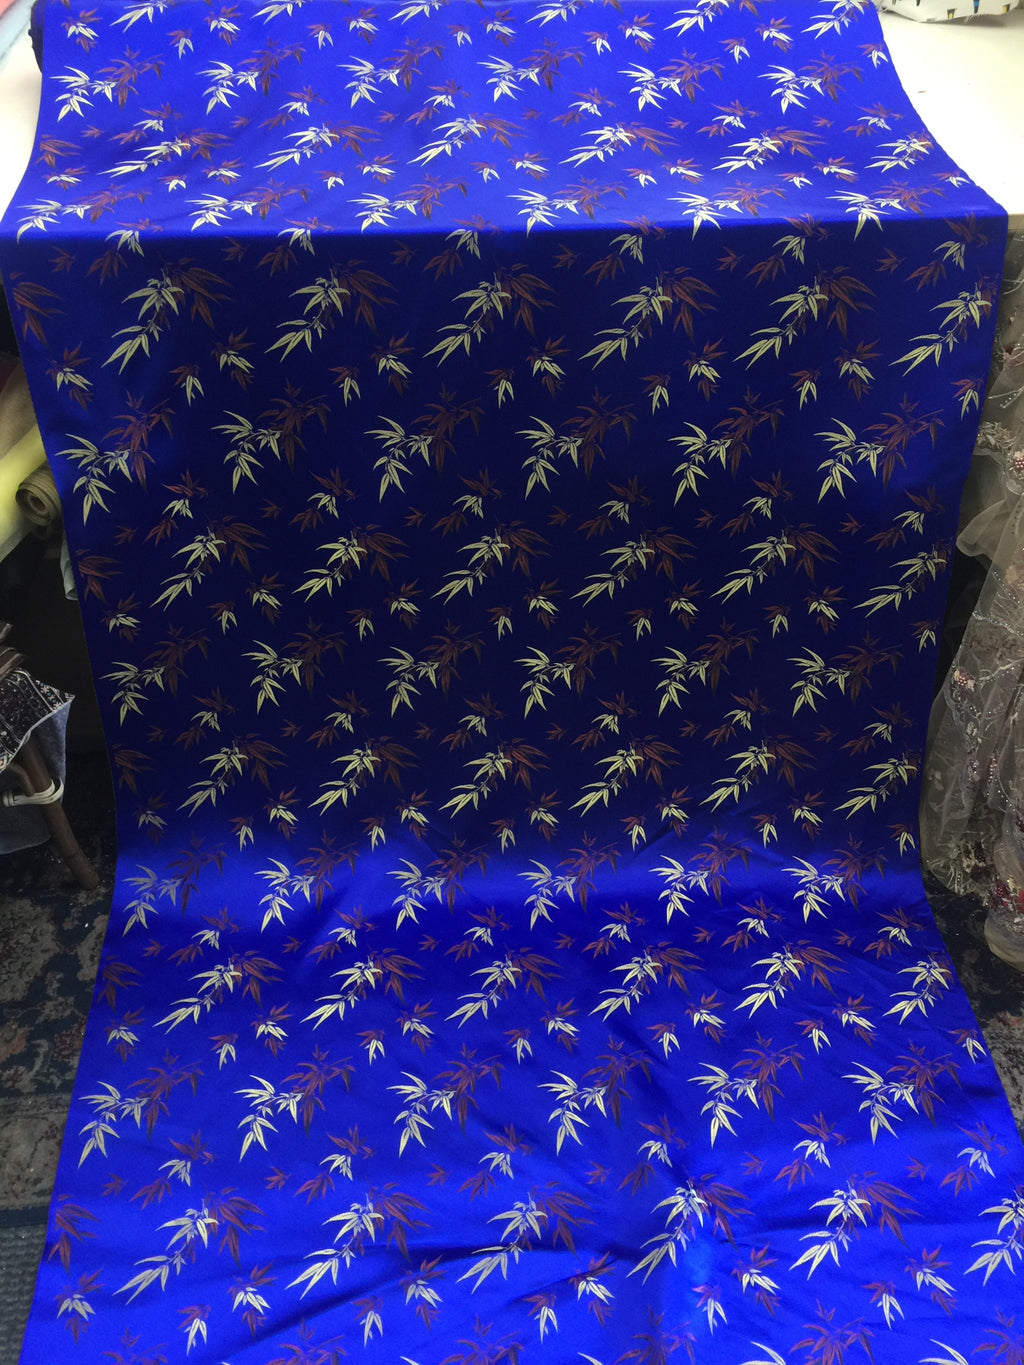 Asian Designs stunning faux silk Bamboo phoenix Brocade satin Royal Blue fabric designer material by yard - KINGDOM OF FABRICS